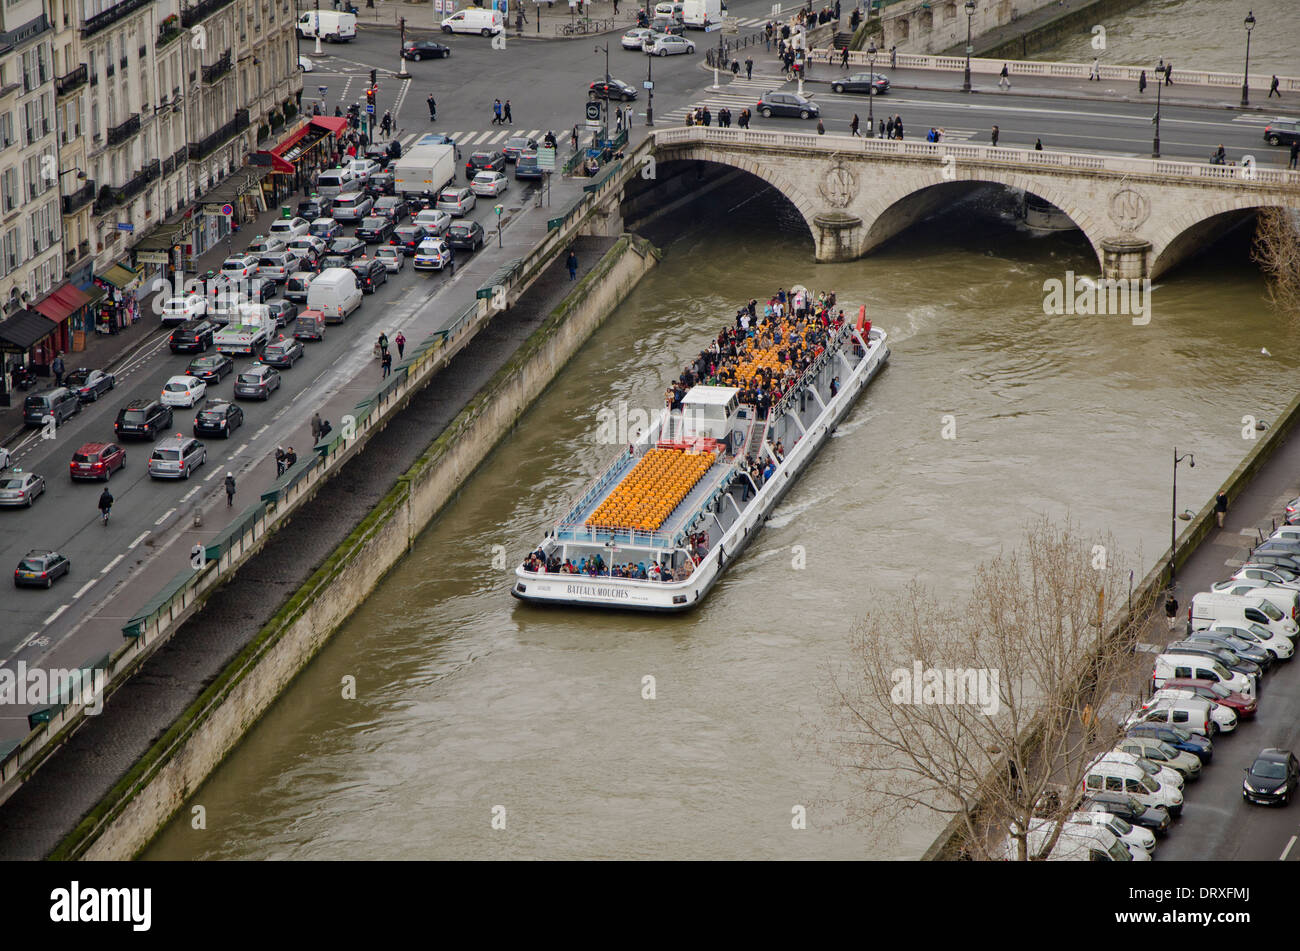 Sightseeing boat on the river Seine passing by at Ile de la Cite, Paris, France. - Stock Image